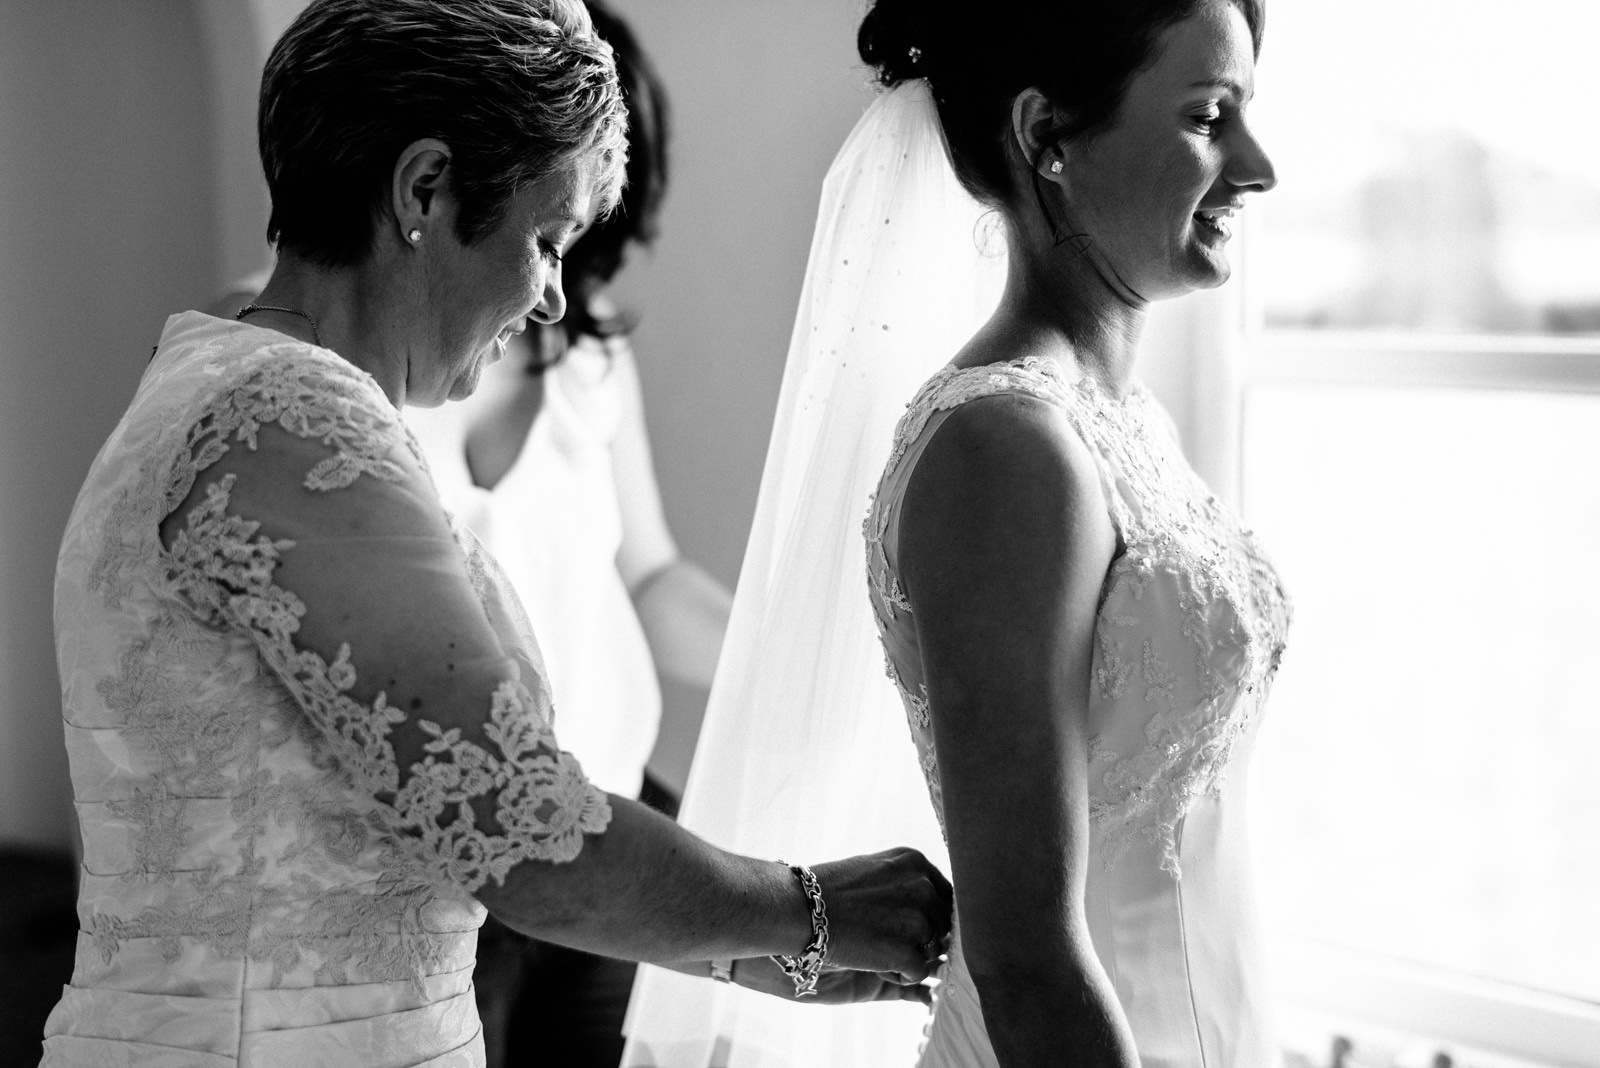 mother of the bride helping bride into her dress